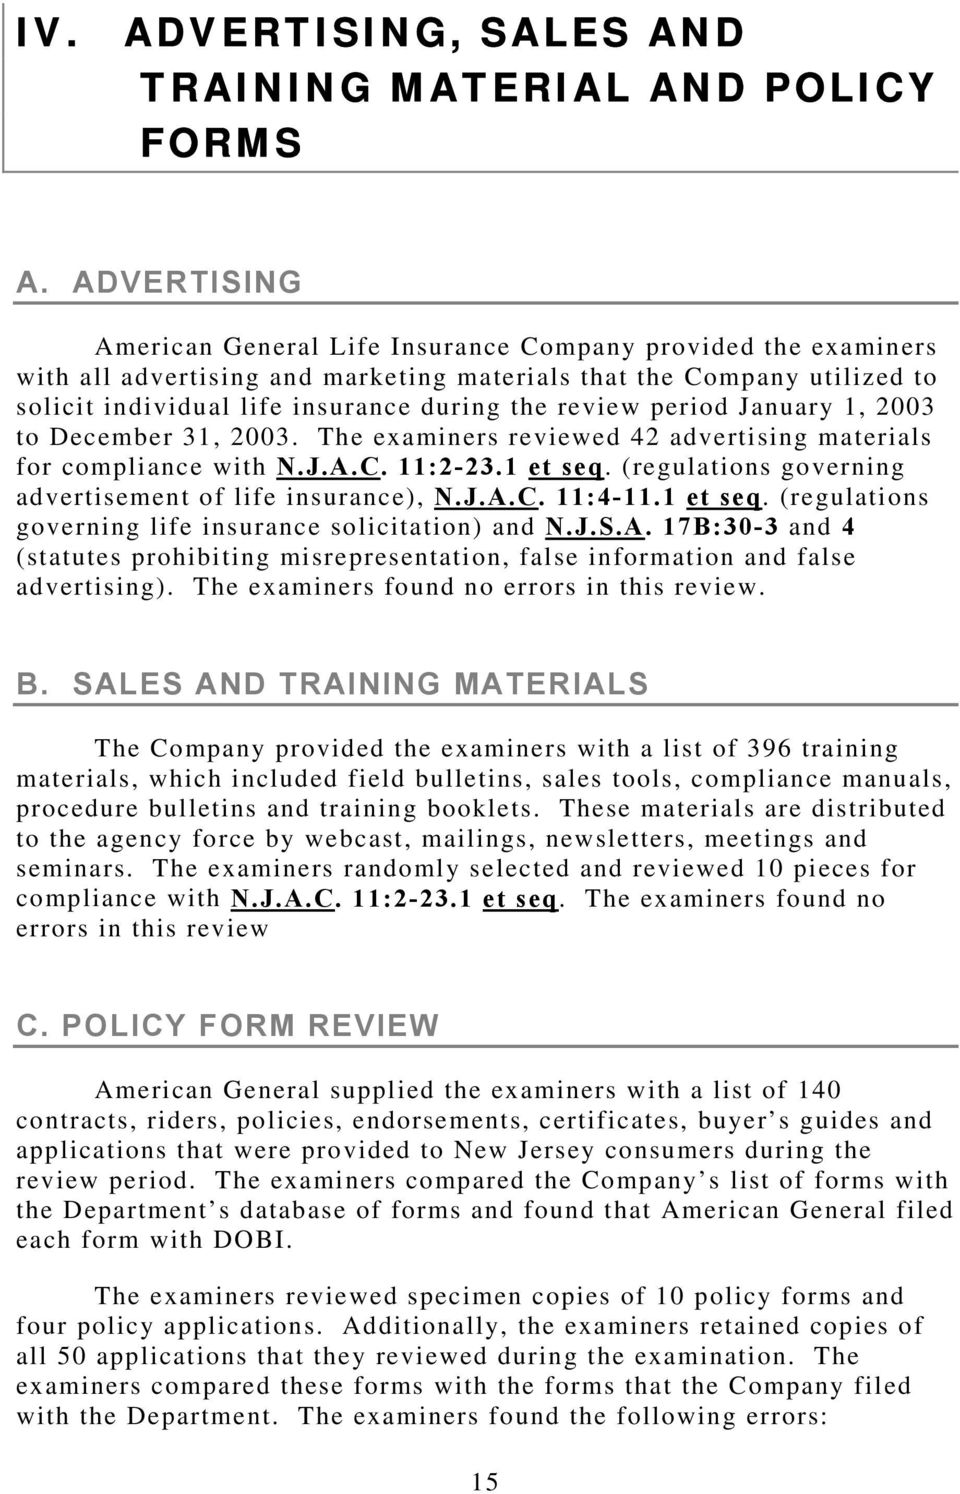 review period January 1, 2003 to December 31, 2003. The examiners reviewed 42 advertising materials for compliance with N.J.A.C. 11:2-23.1 et seq.